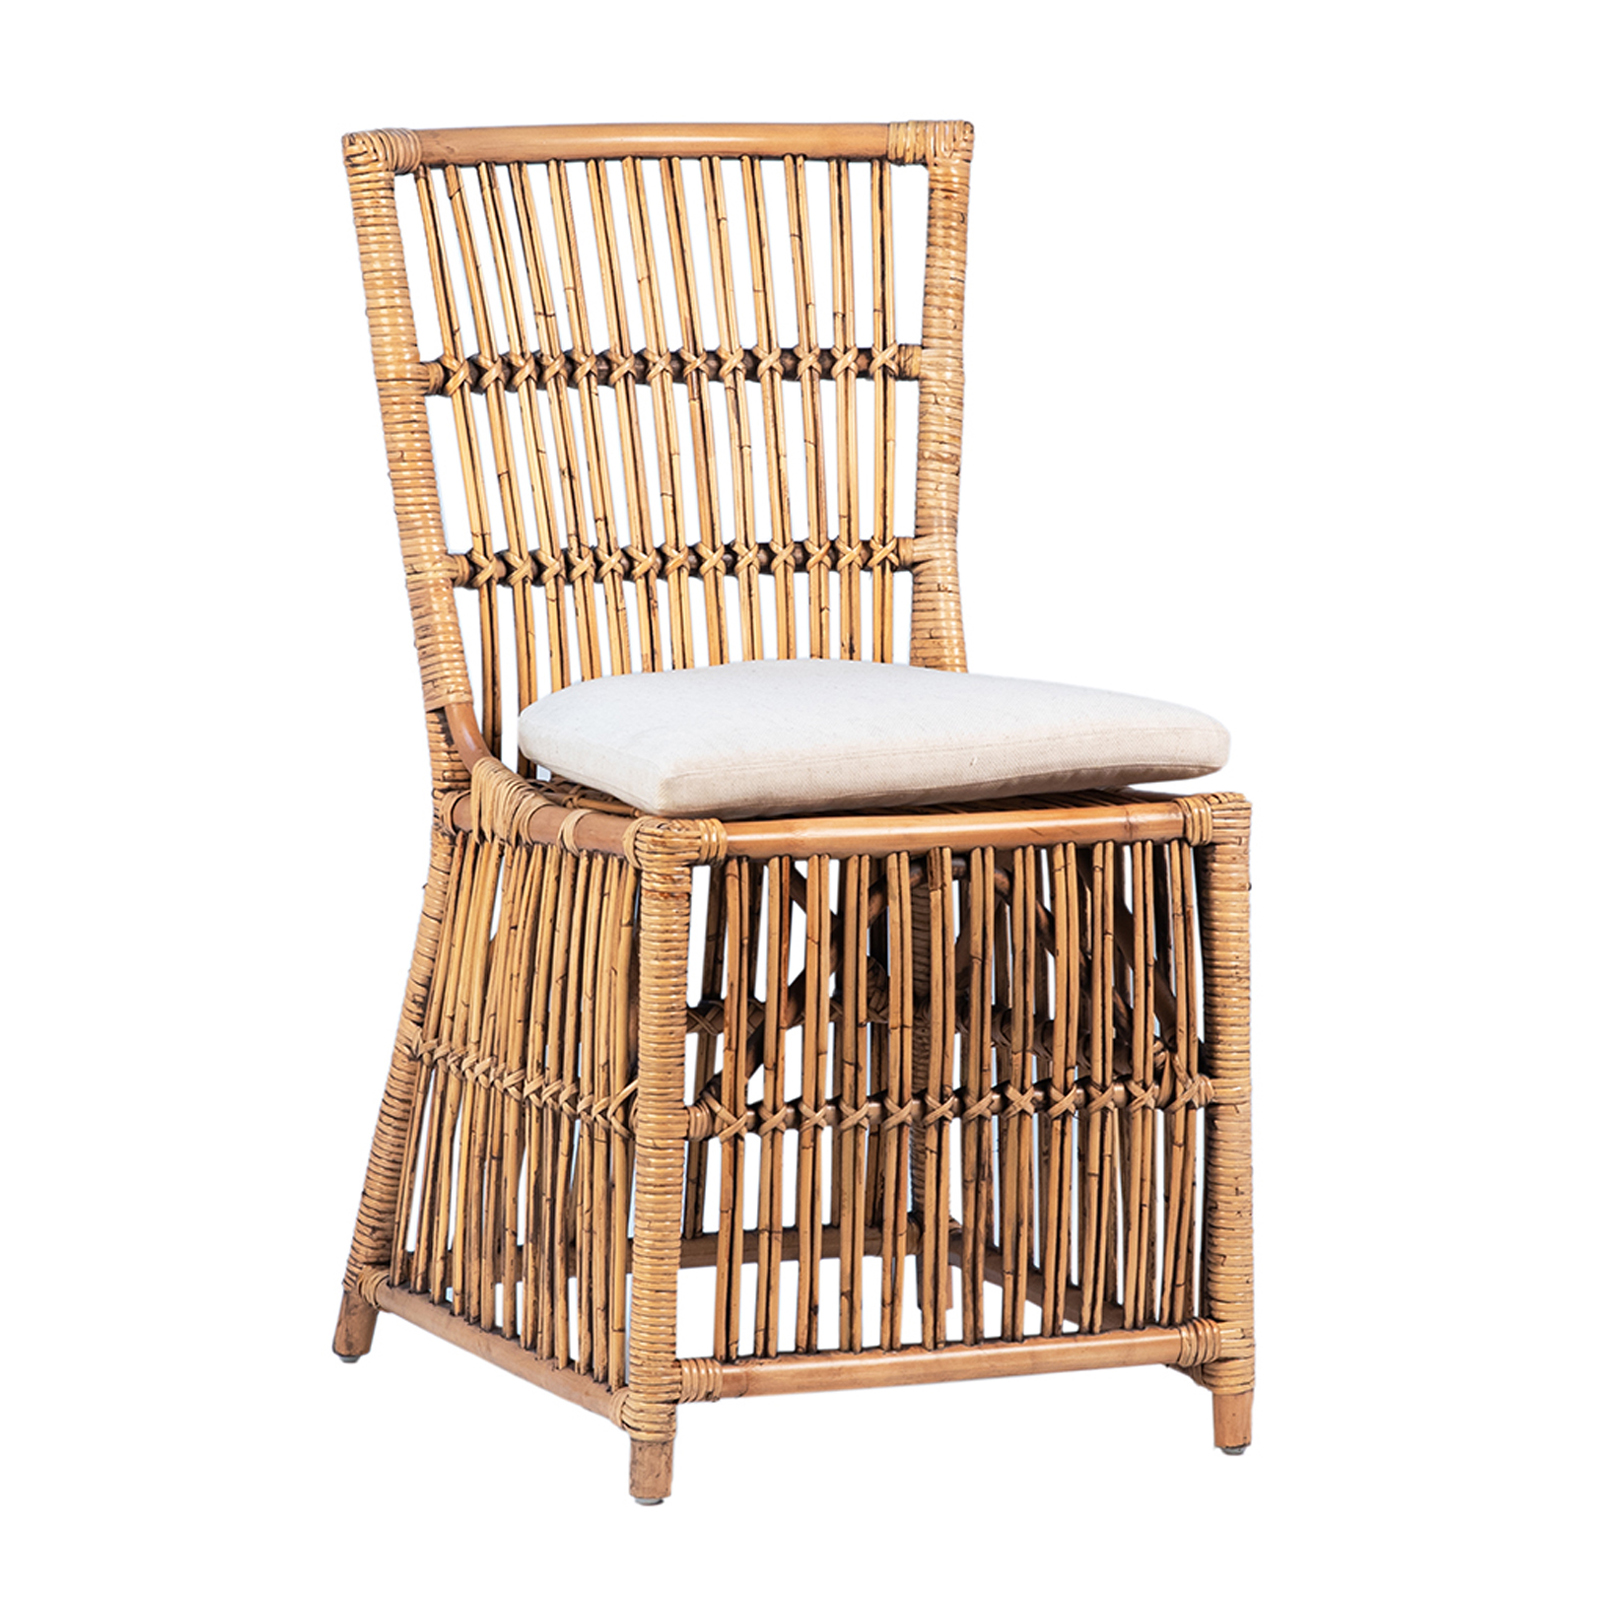 Picture of: Bamboo Rattan Dining Chair Furniture Design Mix Gallery